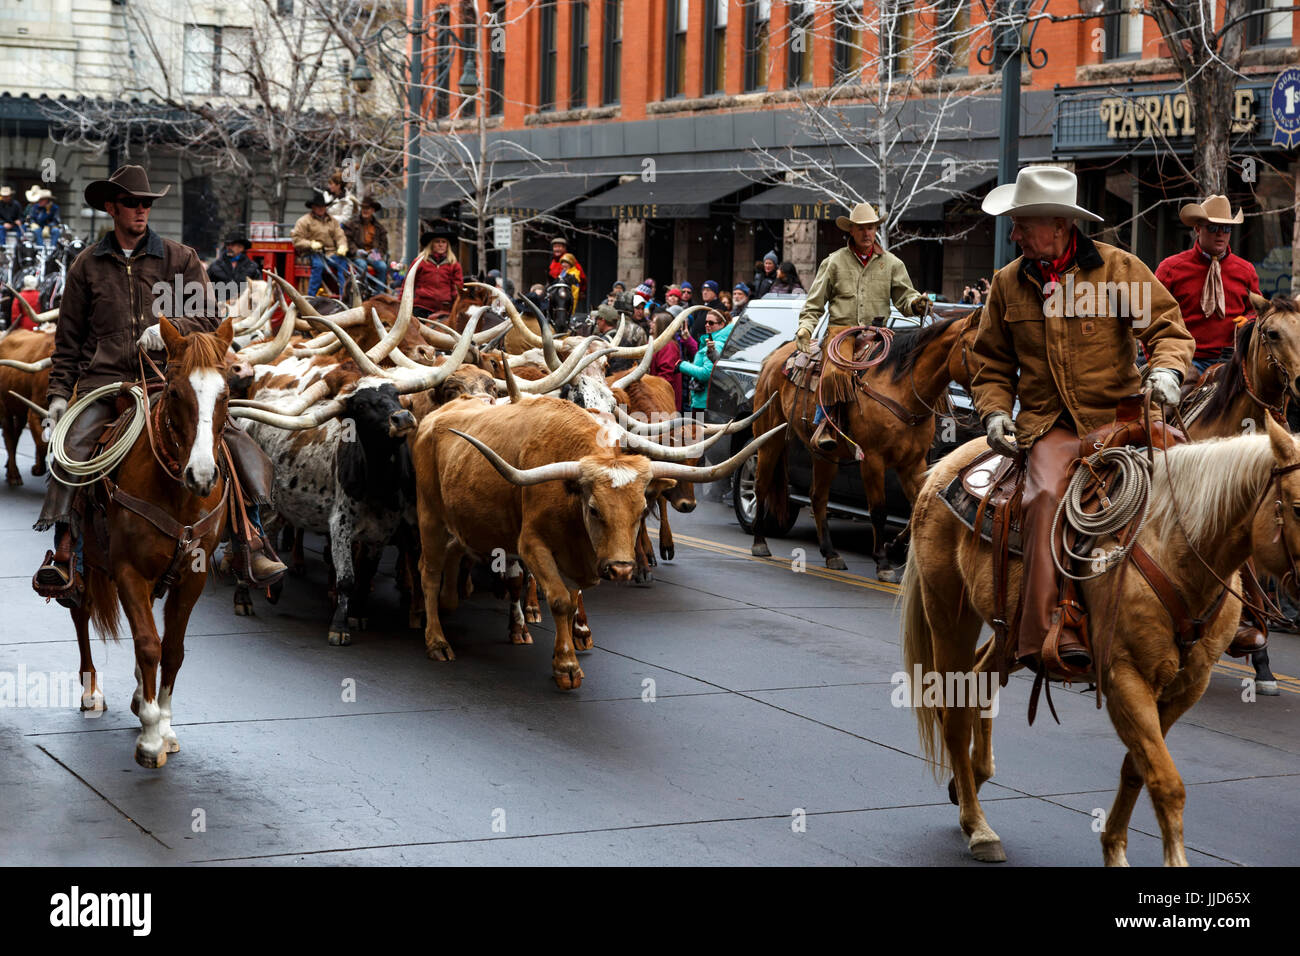 Longhorns herded by cowboys, National Western Stock Show Kick-Off Parade, Denver, Colorado USA - Stock Image